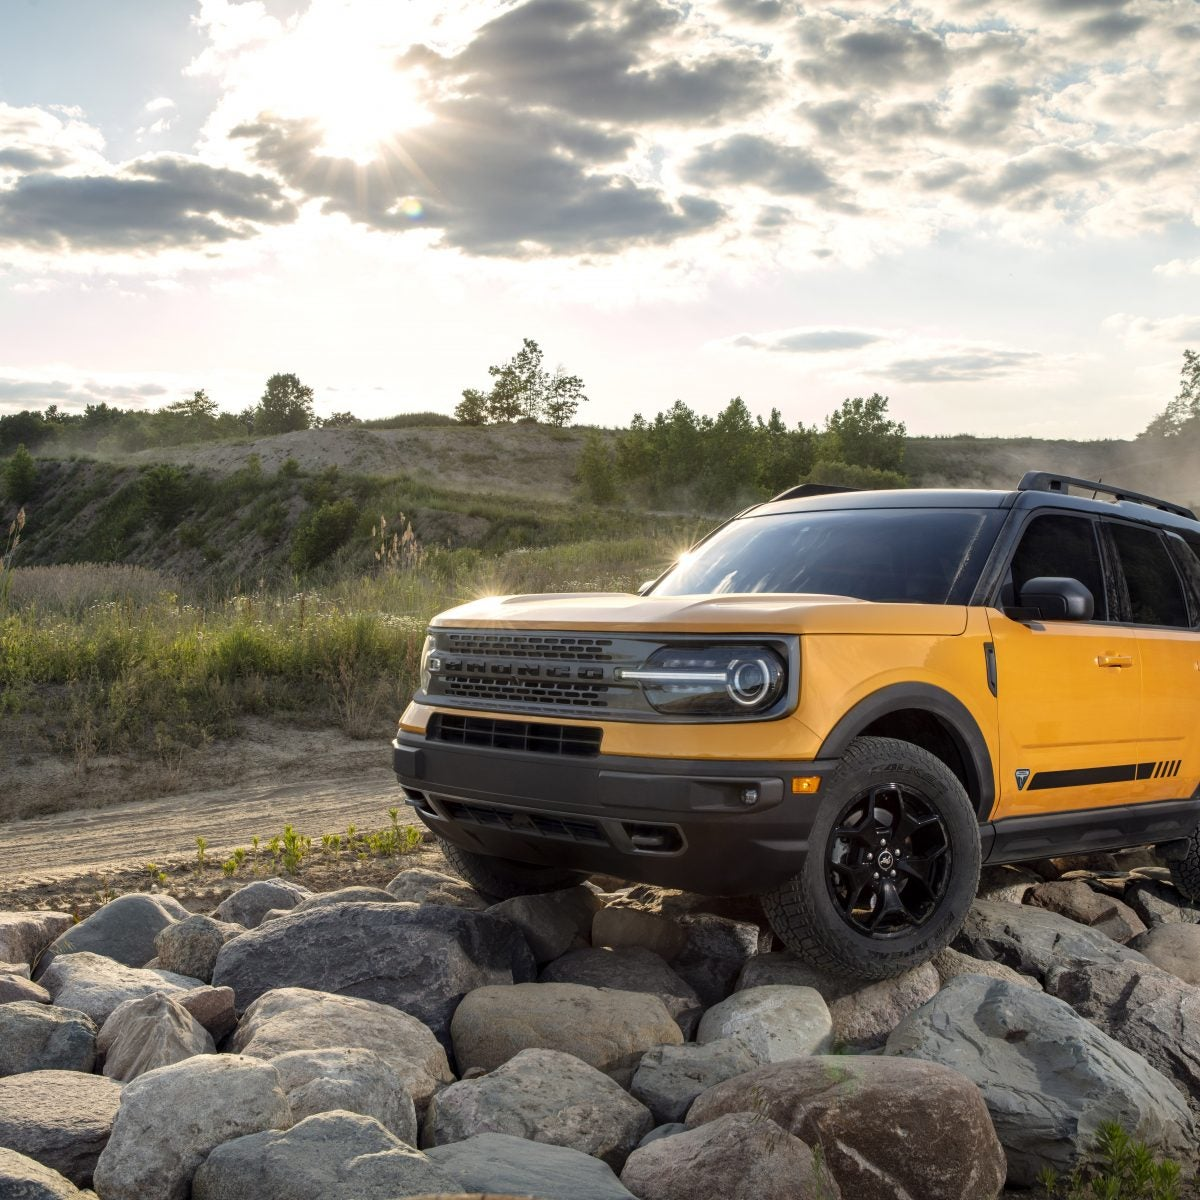 I Drove The 2021 Ford Bronco Sport For My First Trip Since Pre-Pandemic. Here's What You Should Know About It.